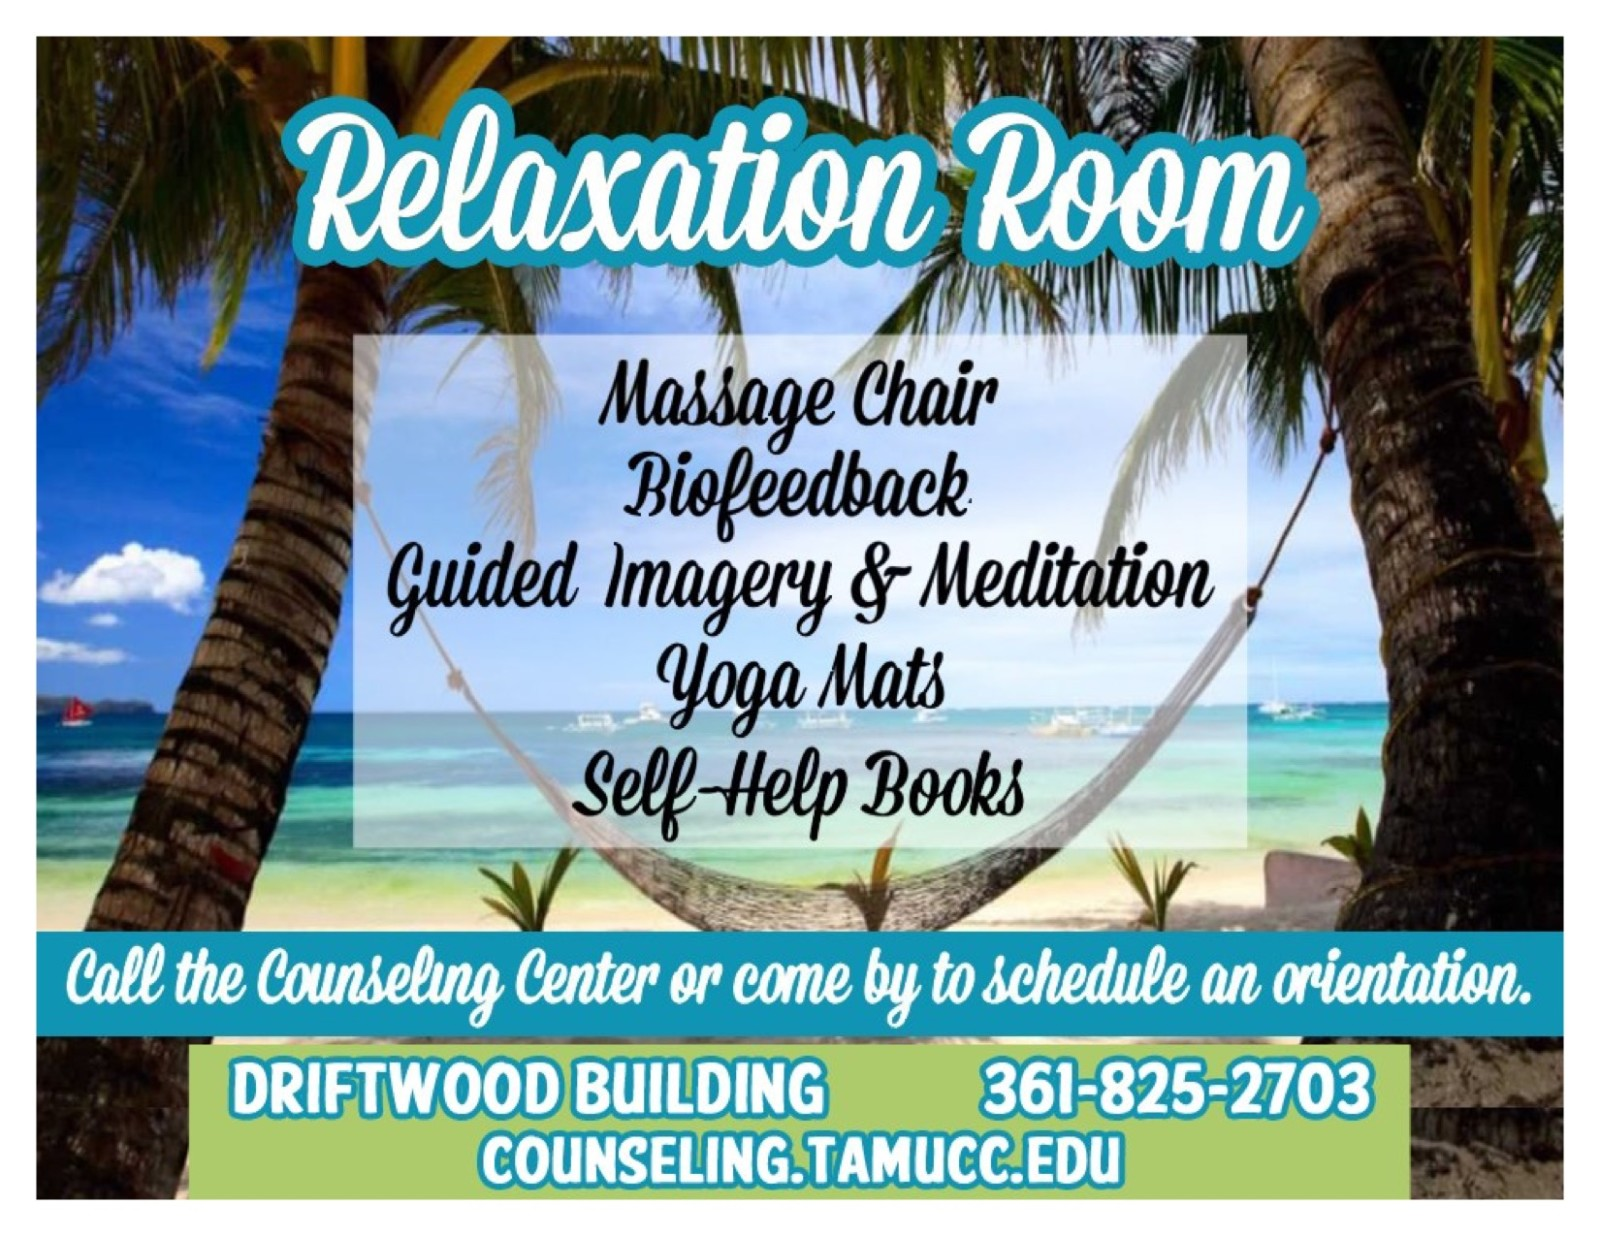 Relaxation room flyer